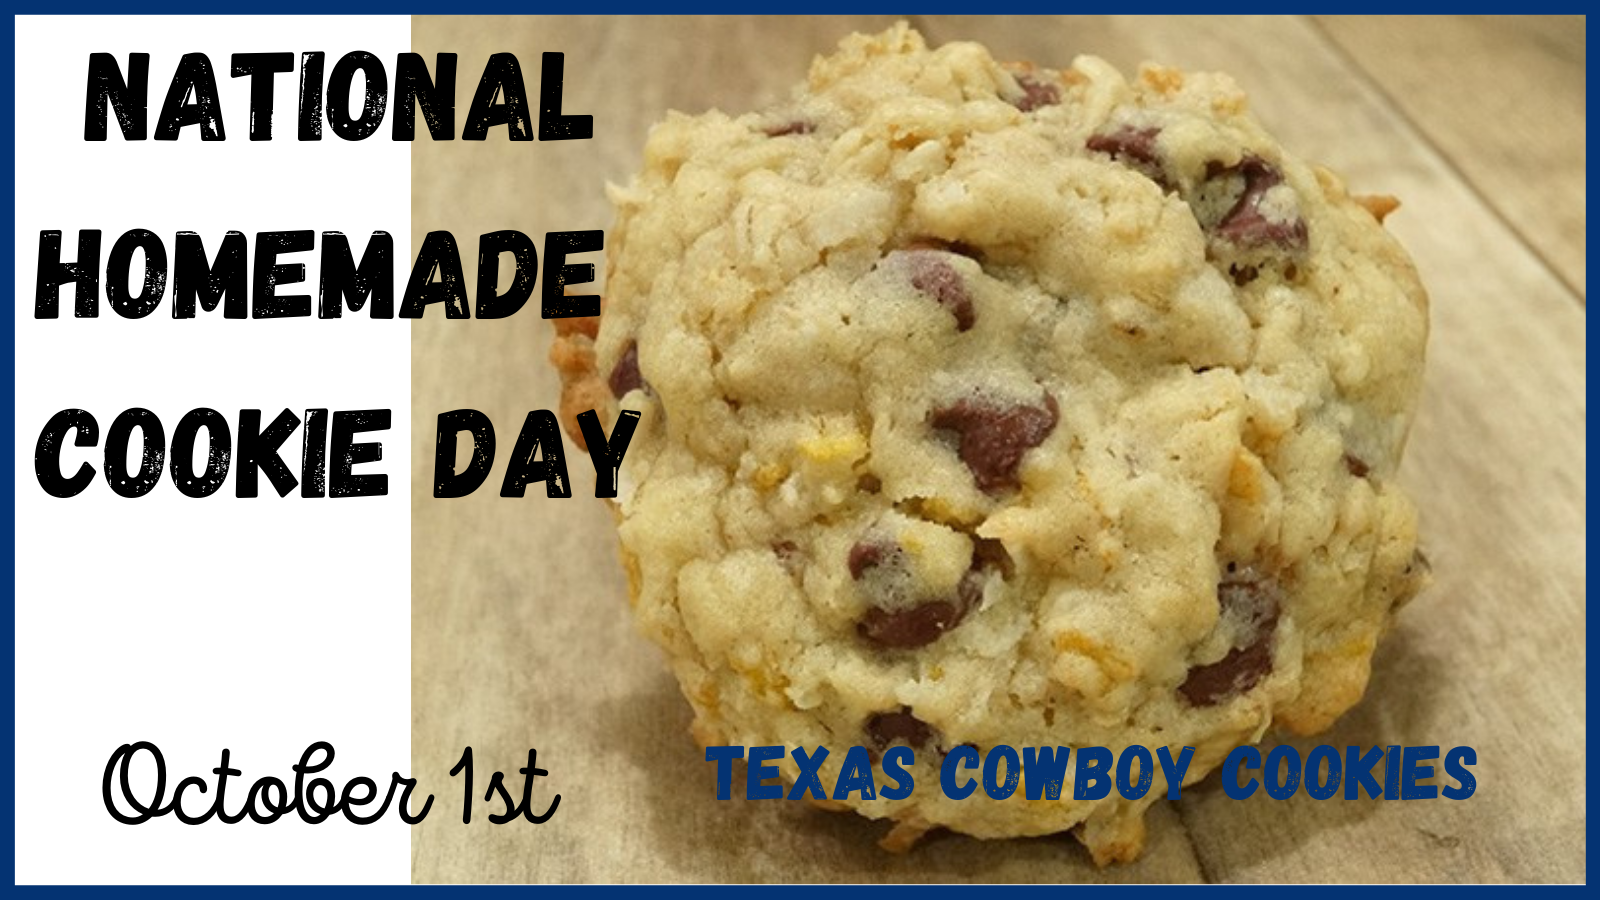 Texas Mansion cookies, looks like a chocolate chip cookie